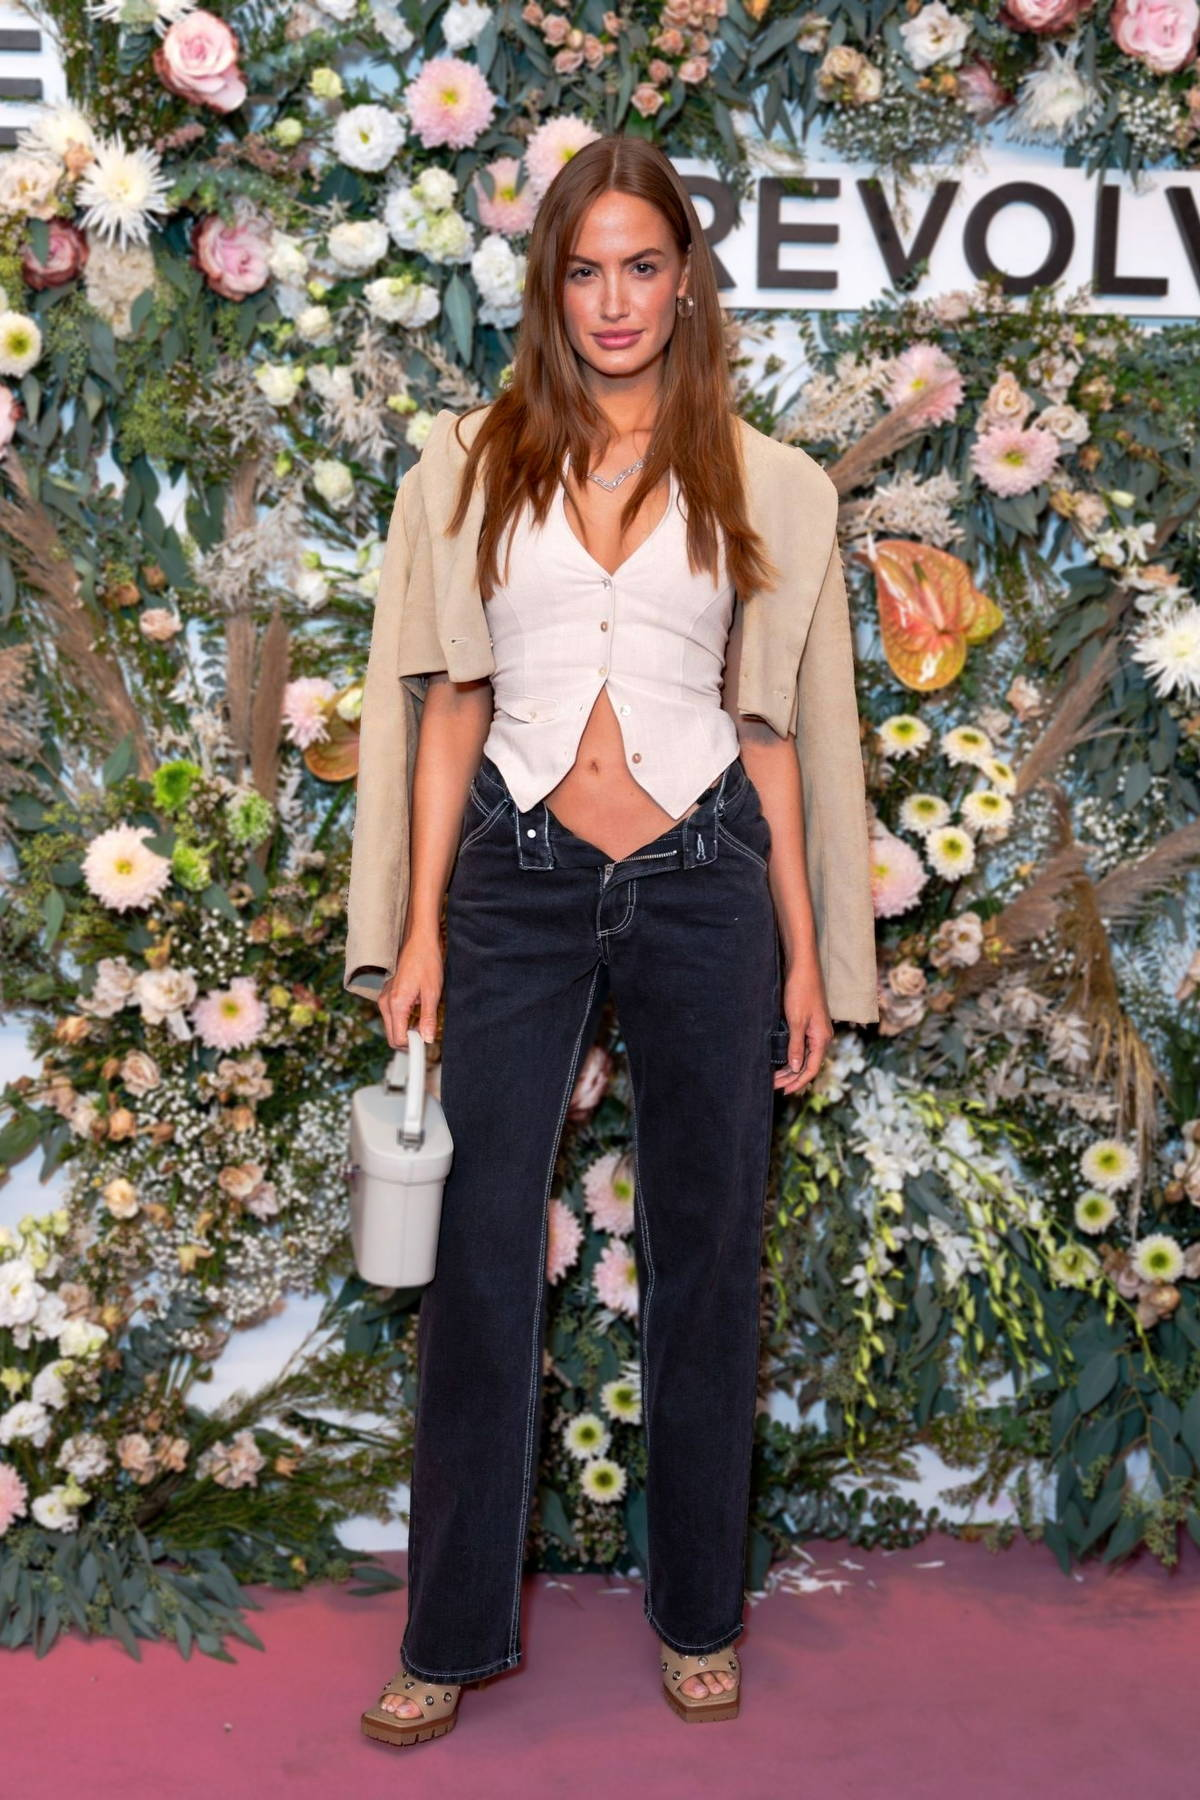 Haley Kalil attends the Revolve Gallery inaugural event during New York Fashion Week at Hudson Yards in New York City